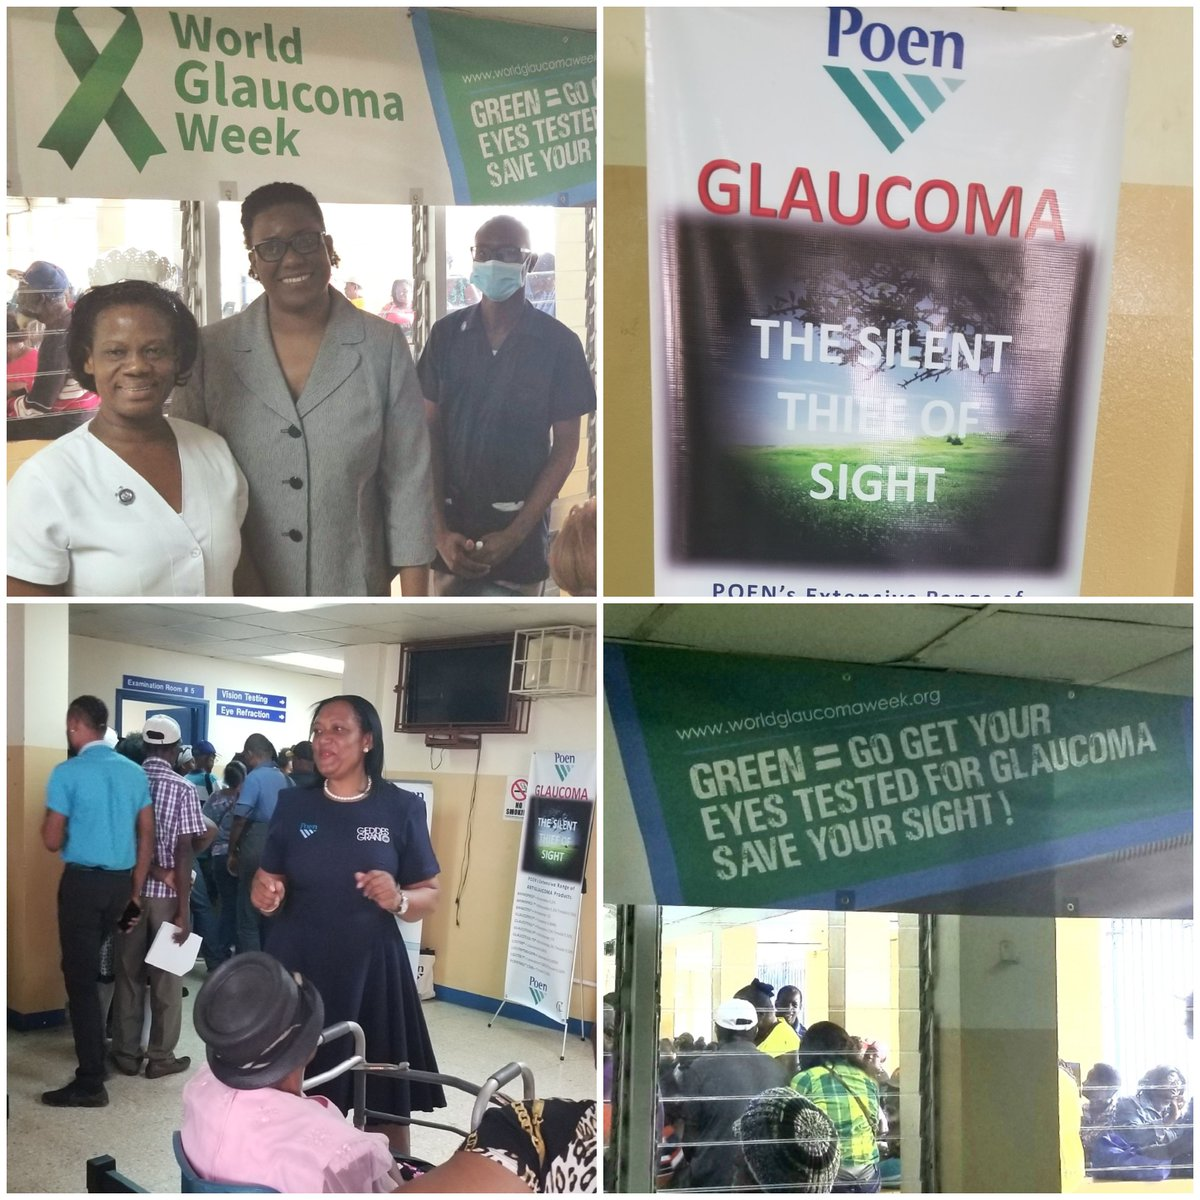 """test Twitter Media - A warm welcome to #glaucomaweek to our friends in Jamaica! """"We will be providing literature and doing short talks with our patients sensitizing them to the condition and reminding them about proper use of eyedrops. We are all excited about raising awareness in Jamaica."""" https://t.co/FHip3JF6mz"""